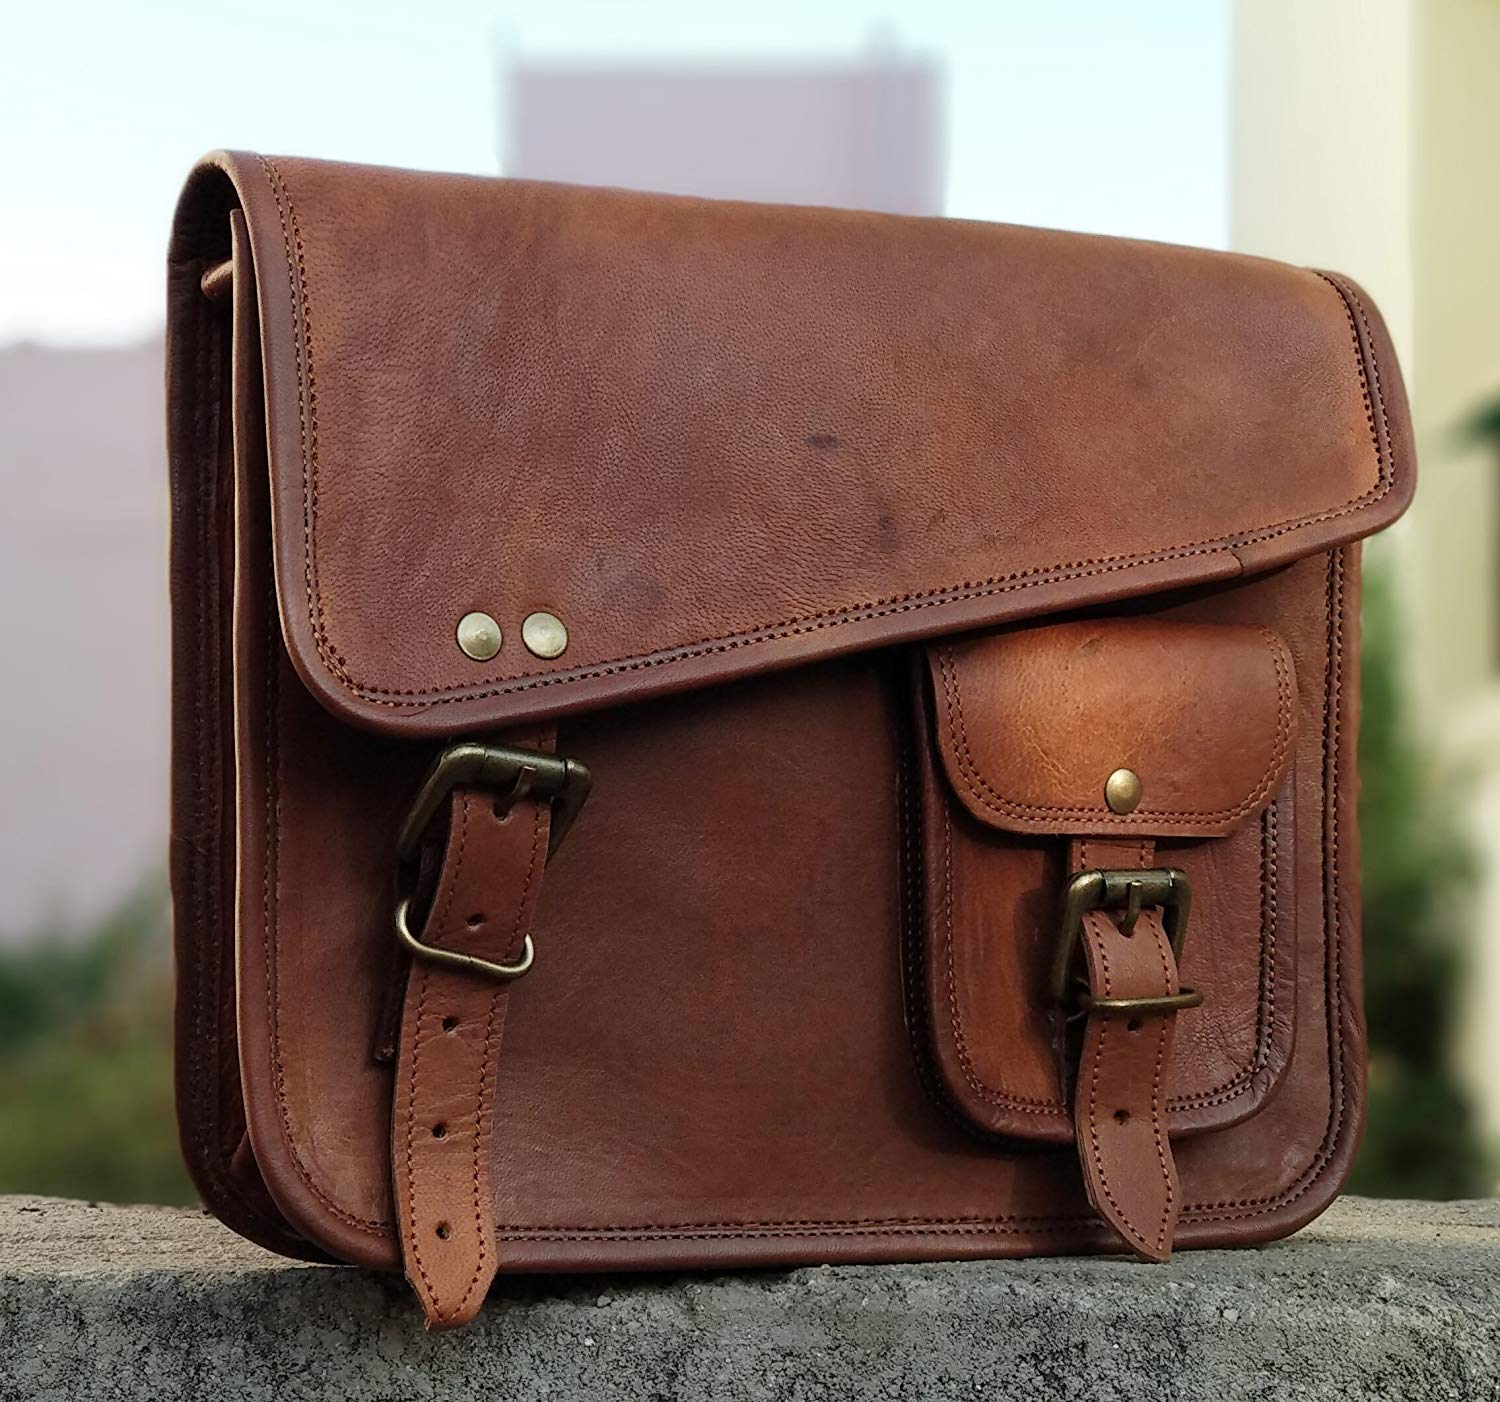 HandMadeCart Stylish Men's Genuine Leather Brown Shoulder Messenger Passport Bag Murse